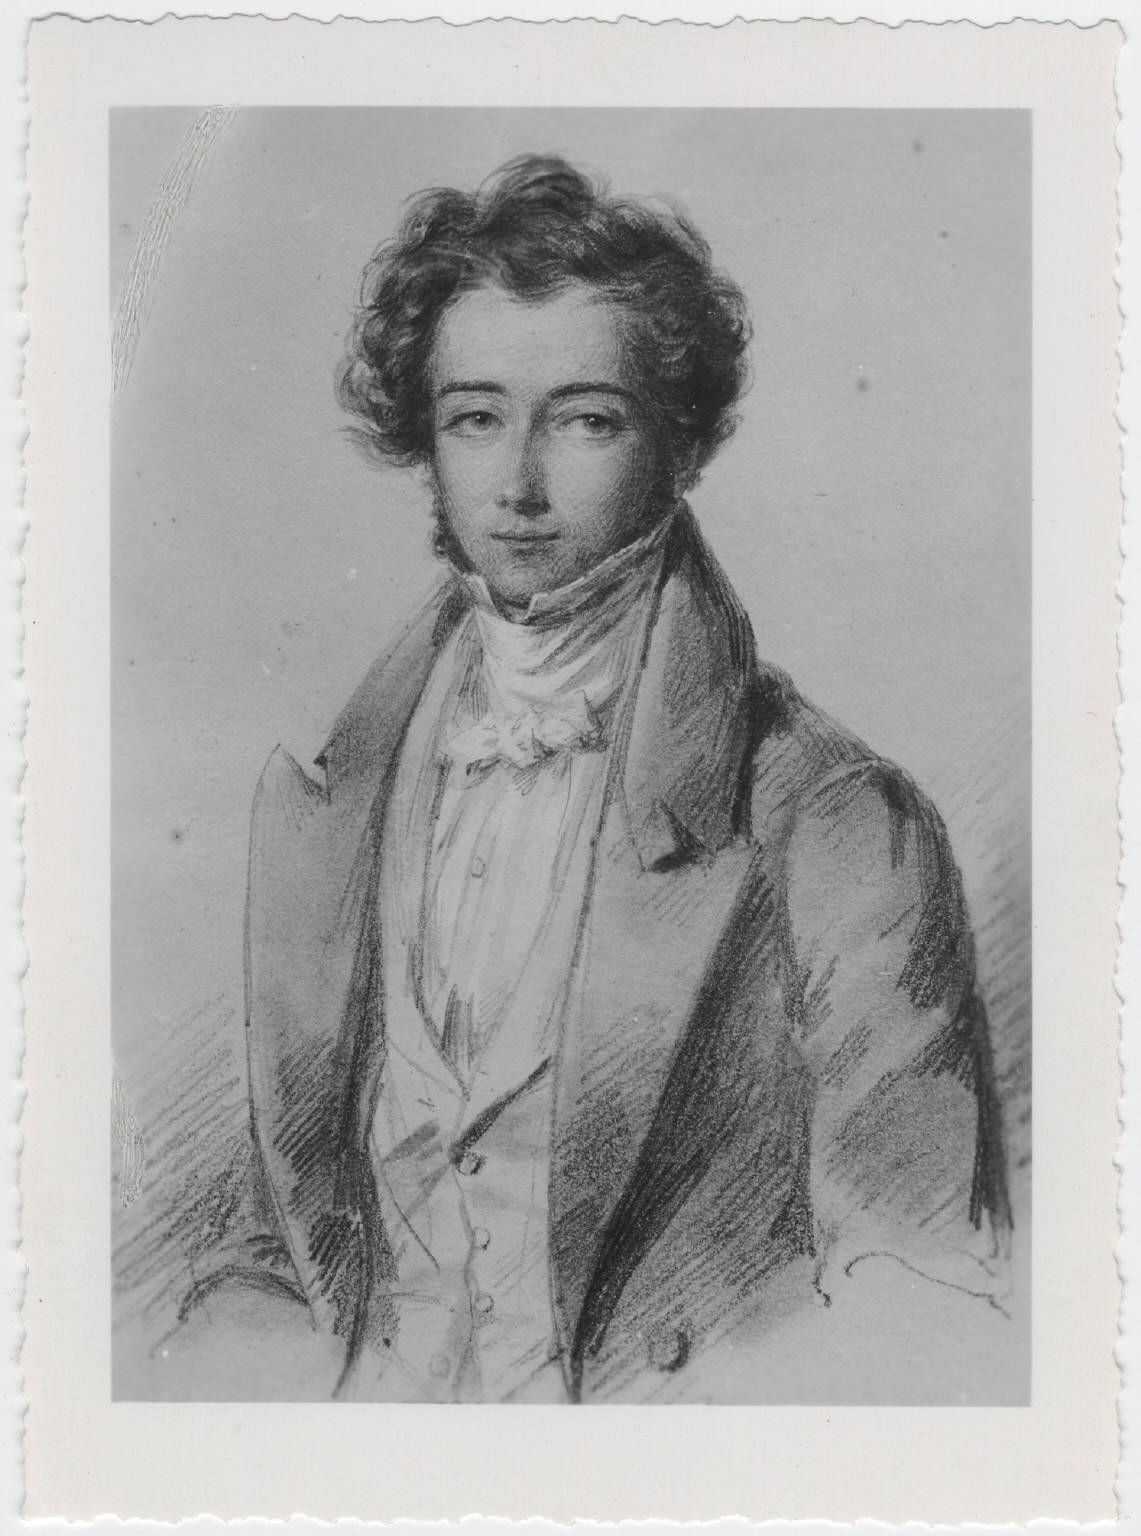 A picture of the author Alexis de Tocqueville